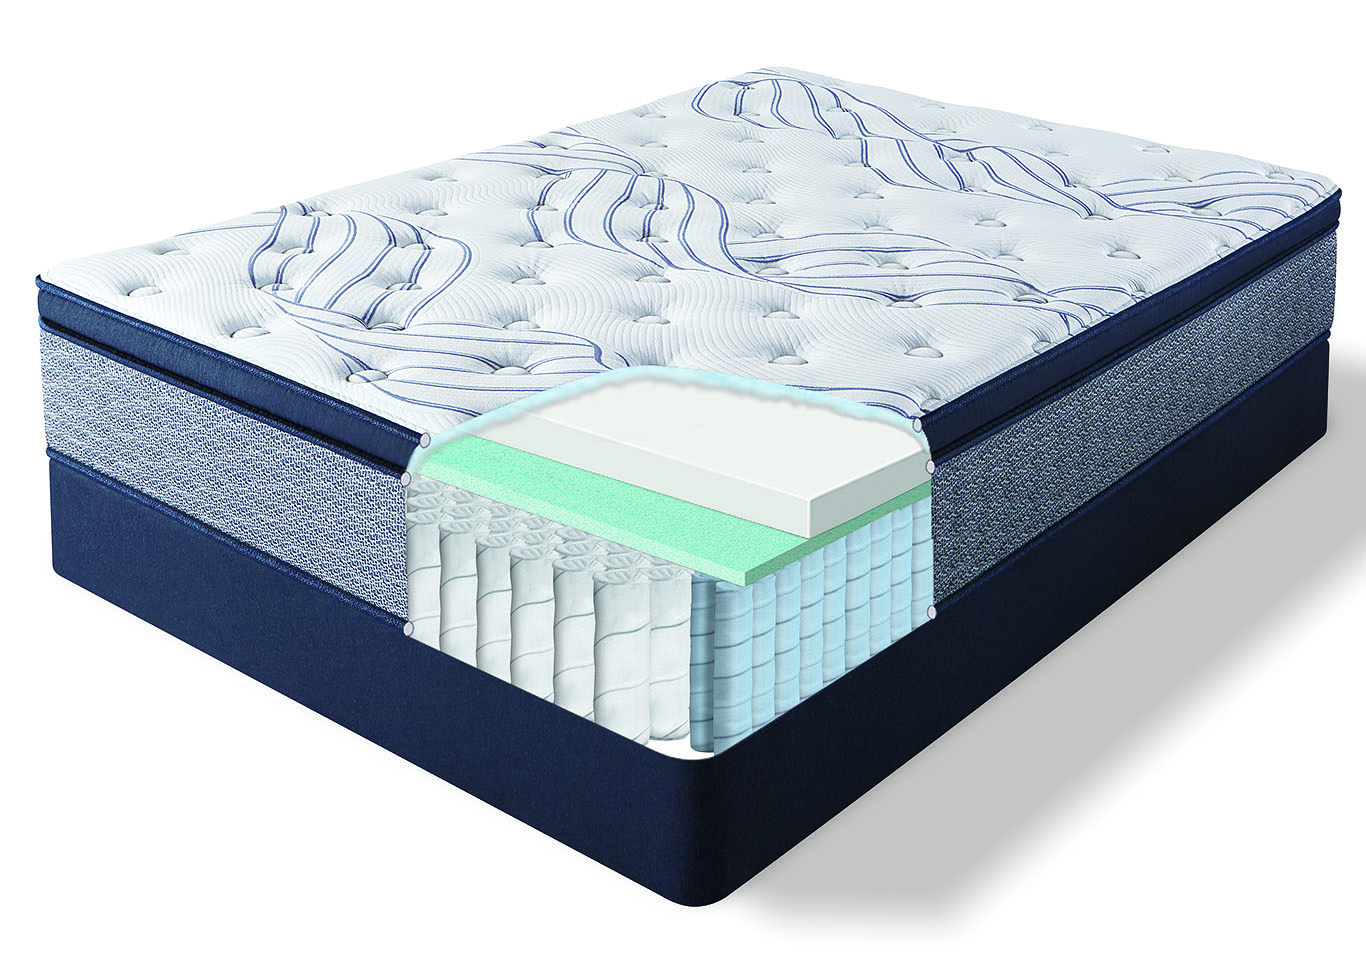 Kleinmon II Pillow Top Firm California King Mattress,Serta